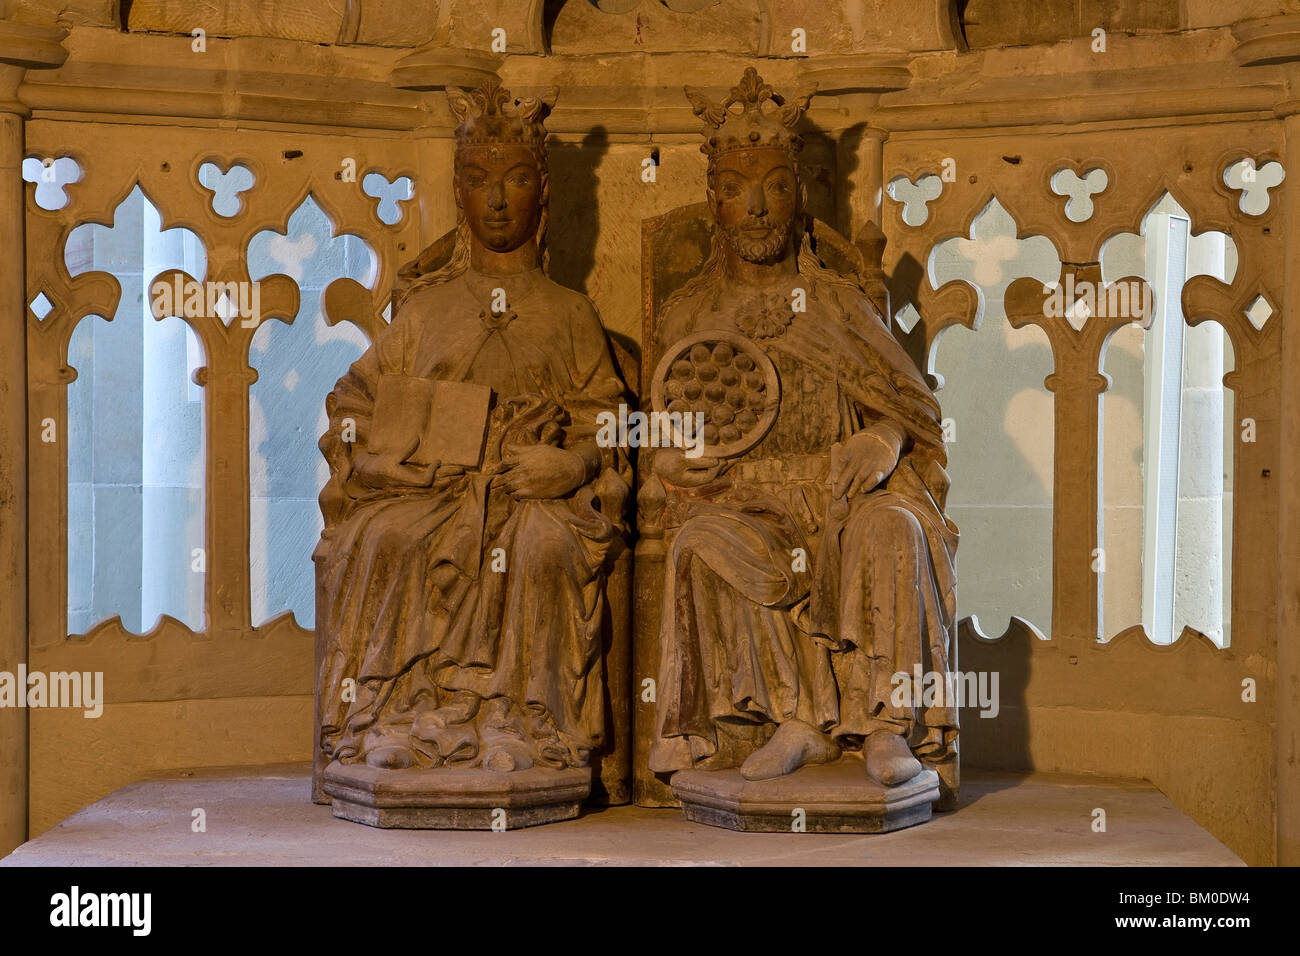 The Royal Couple in Magdeburg Cathedral, on the river Elbe, Magdeburg, Saxony-Anhalt, Germany, Europe - Stock Image